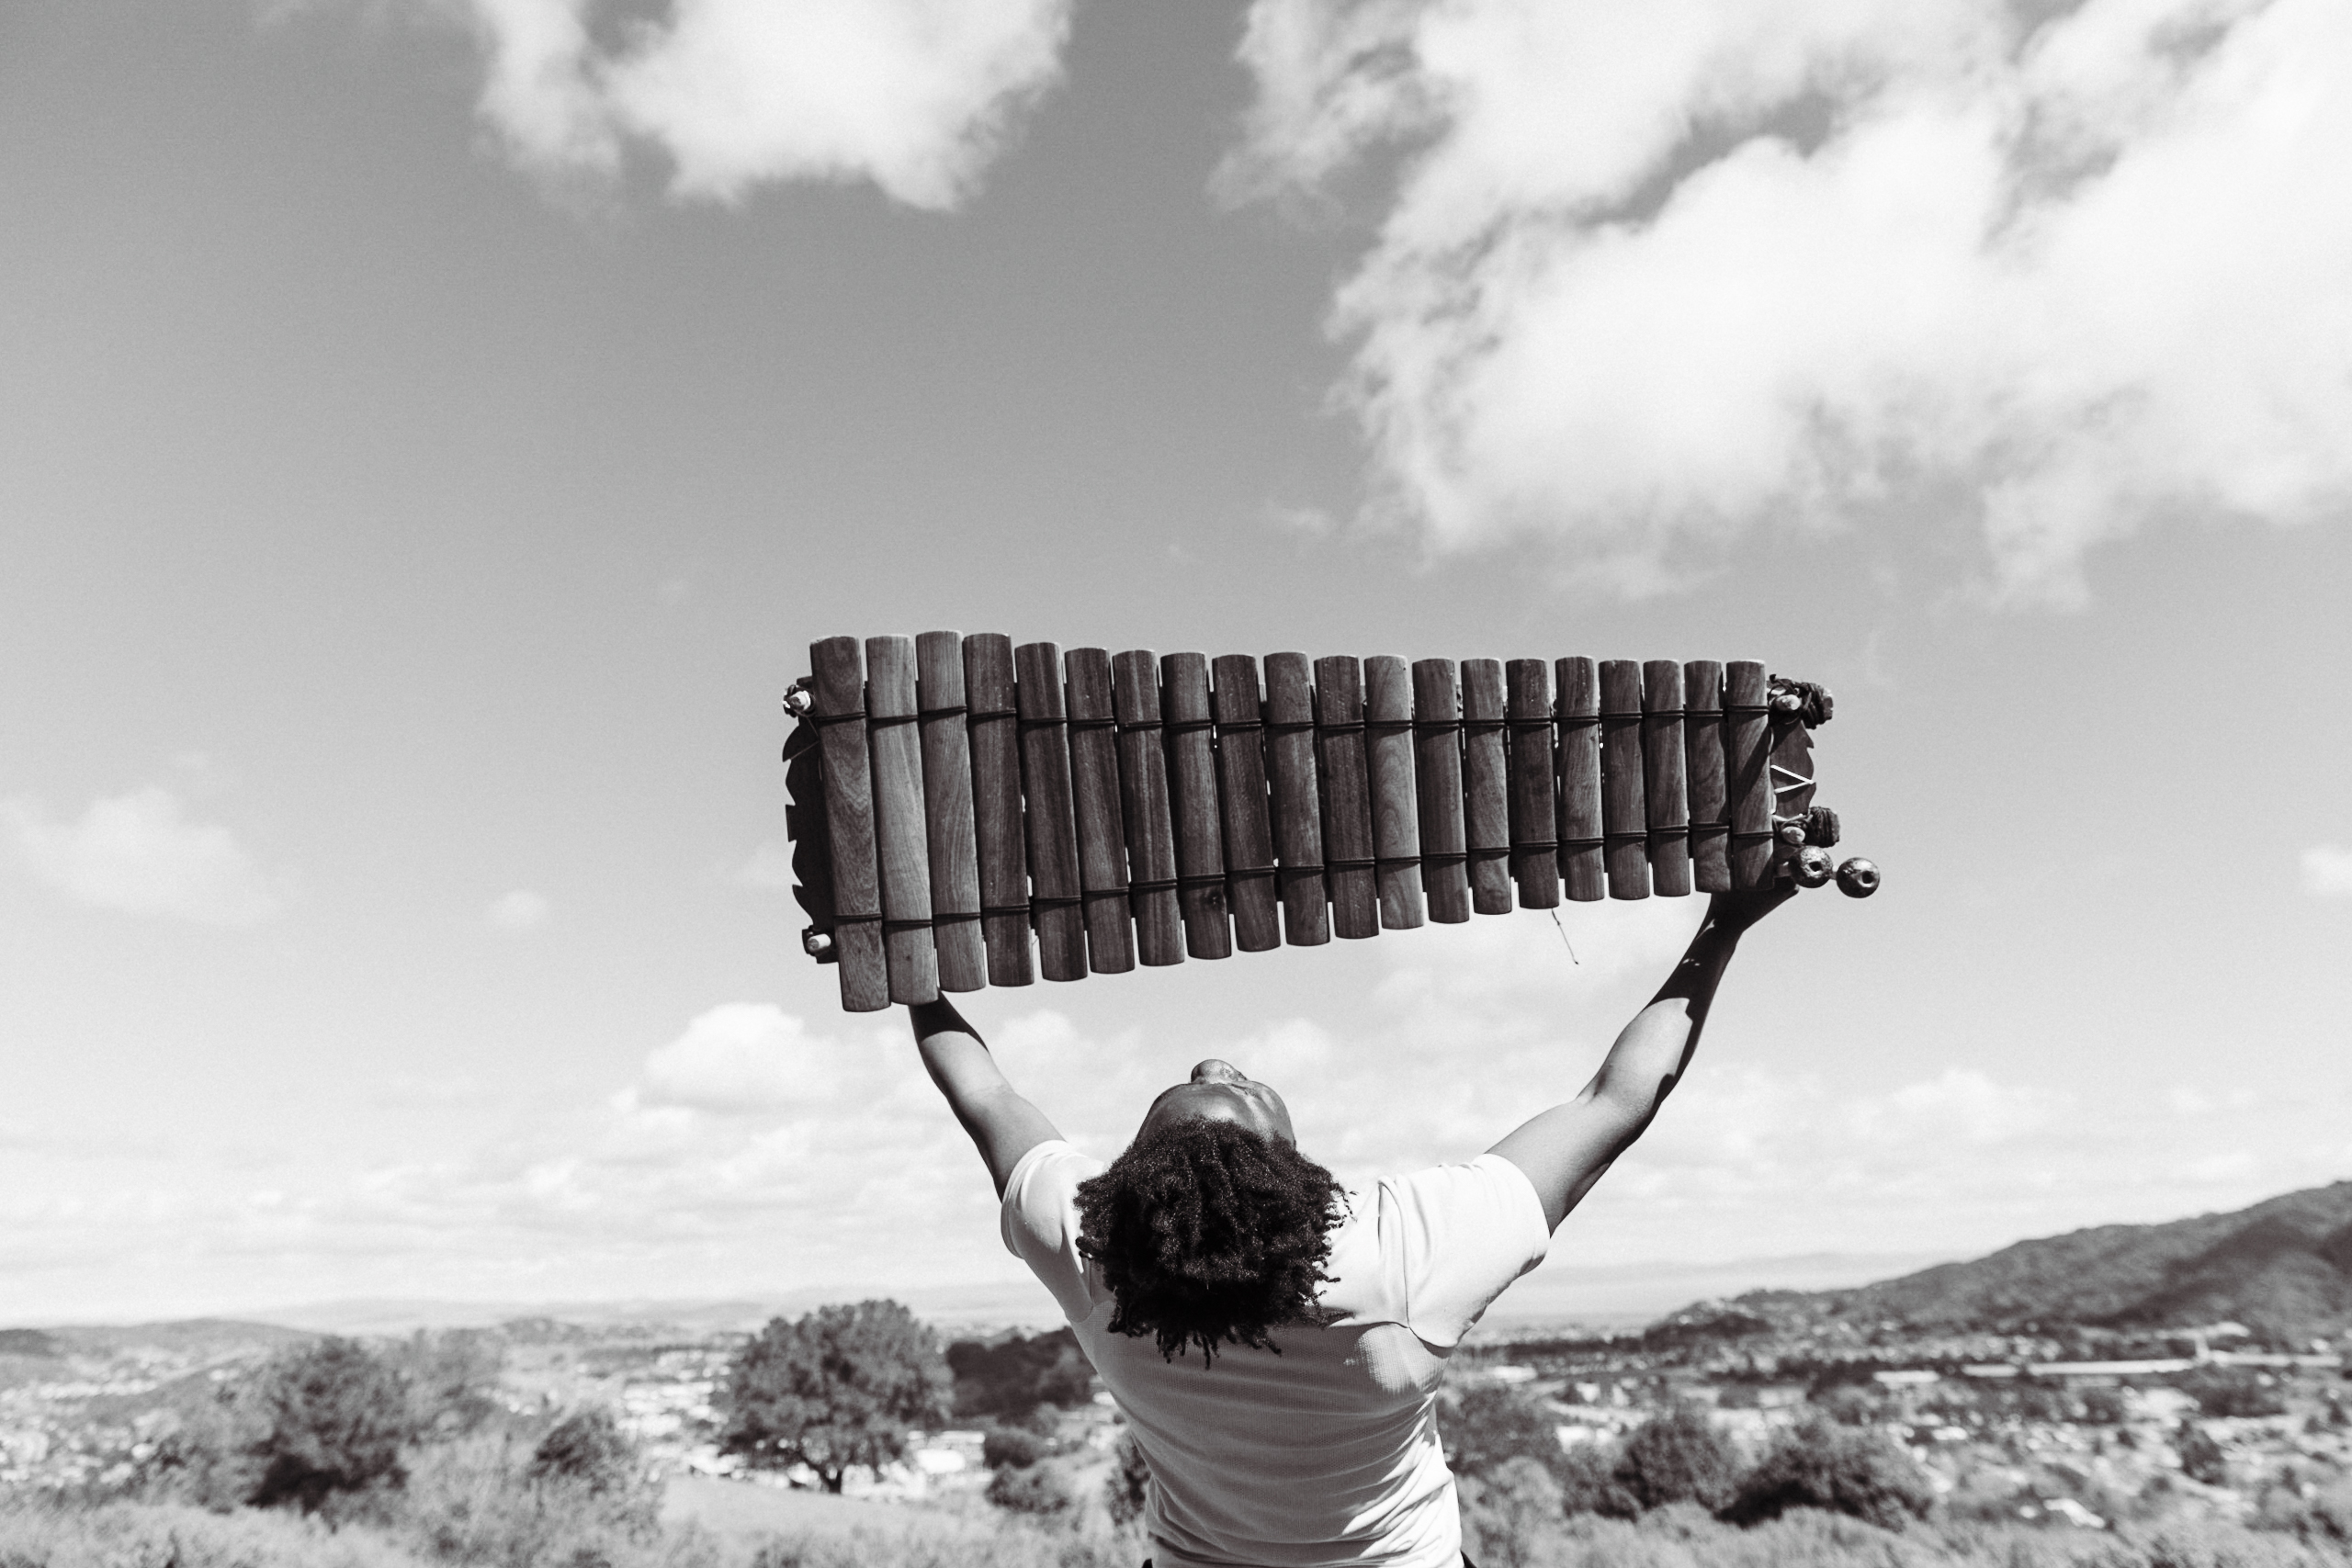 Balafon in the air of San Francisco by Adama Bilorou